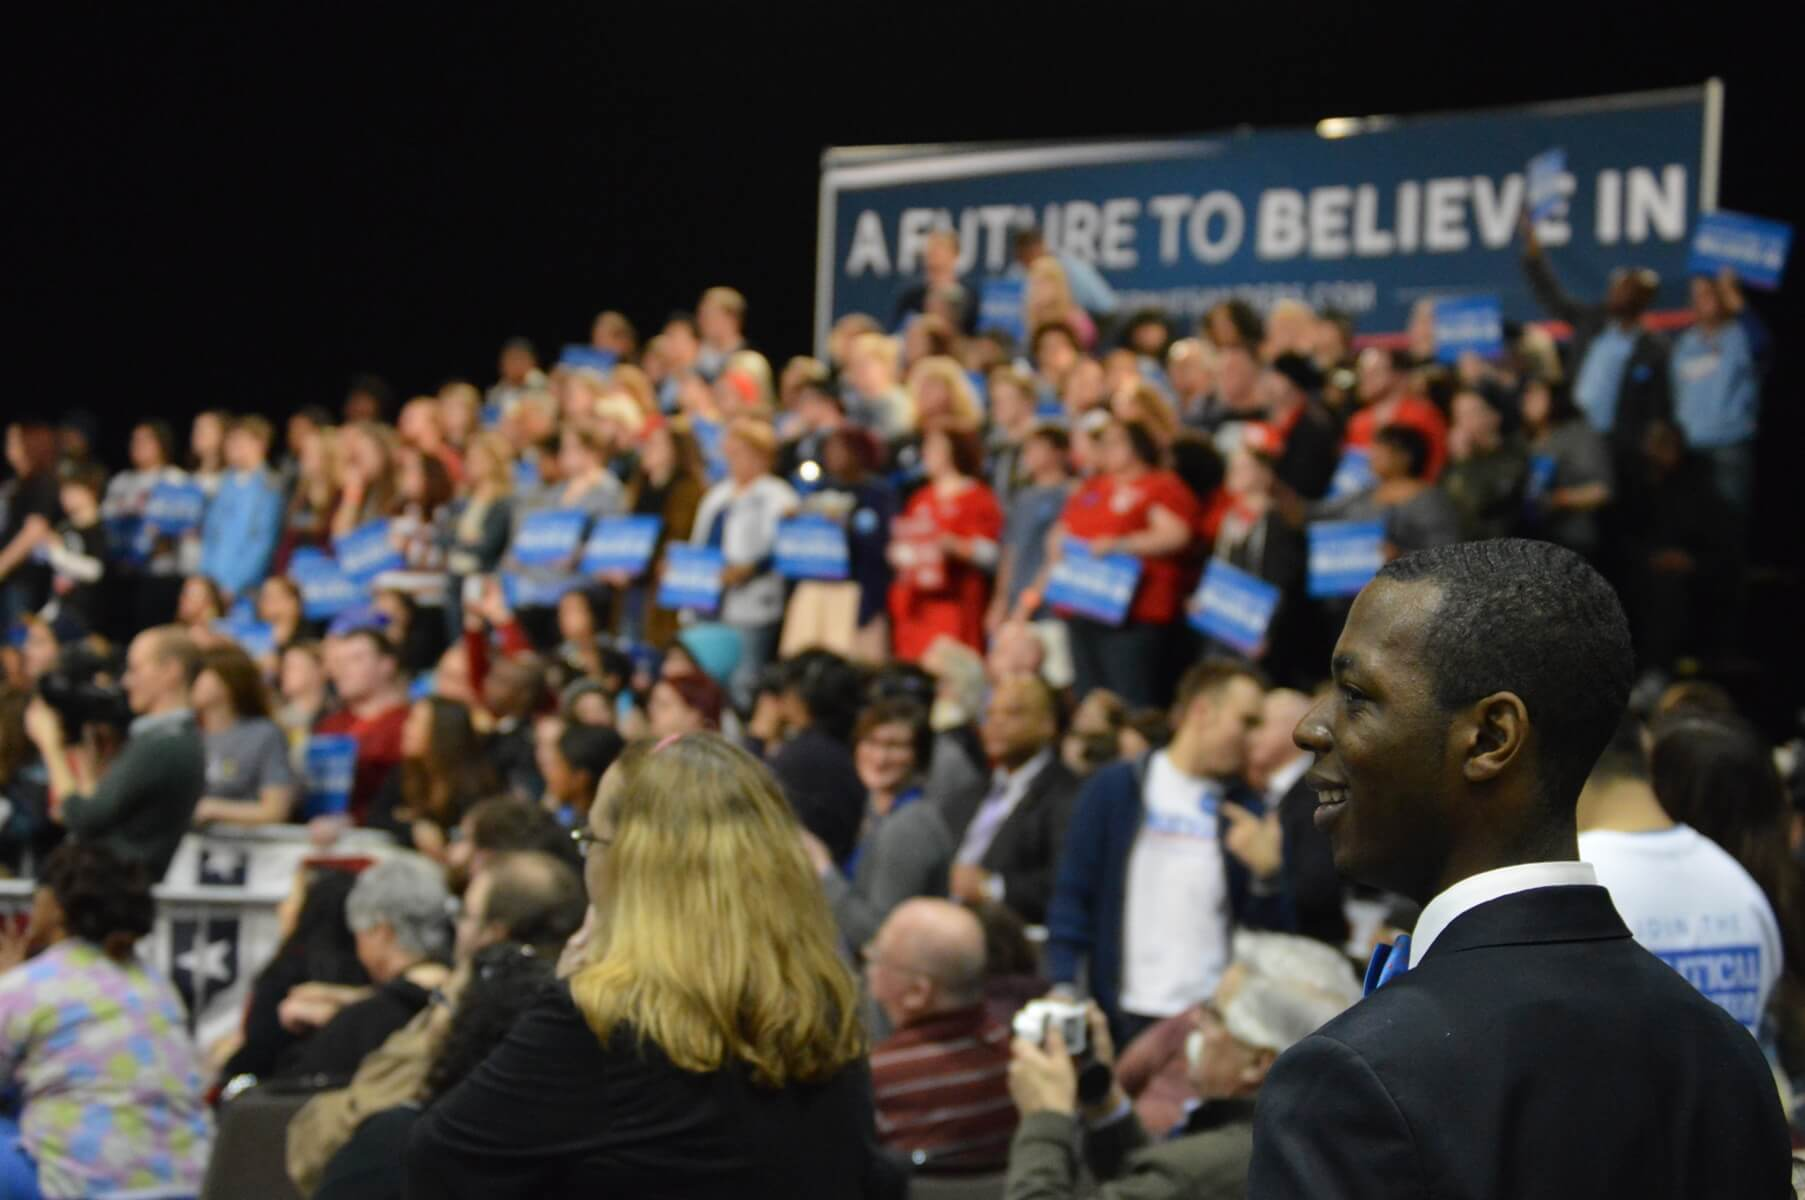 Kansas Dems ED Kerry Gooch looks out at potential new Democrats at Sanders rally